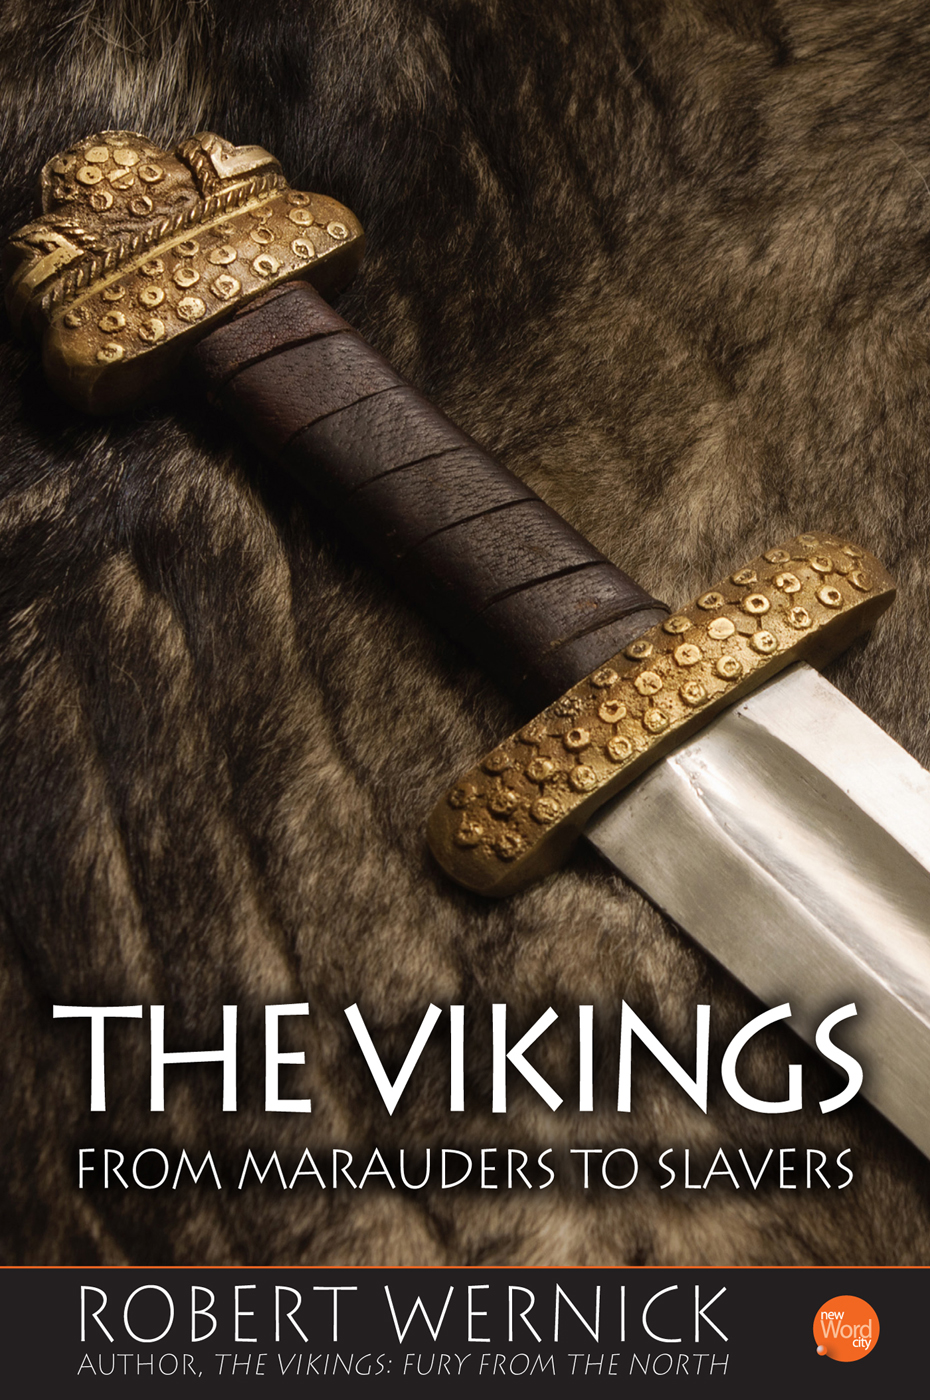 The Vikings: From Marauders to Slavers